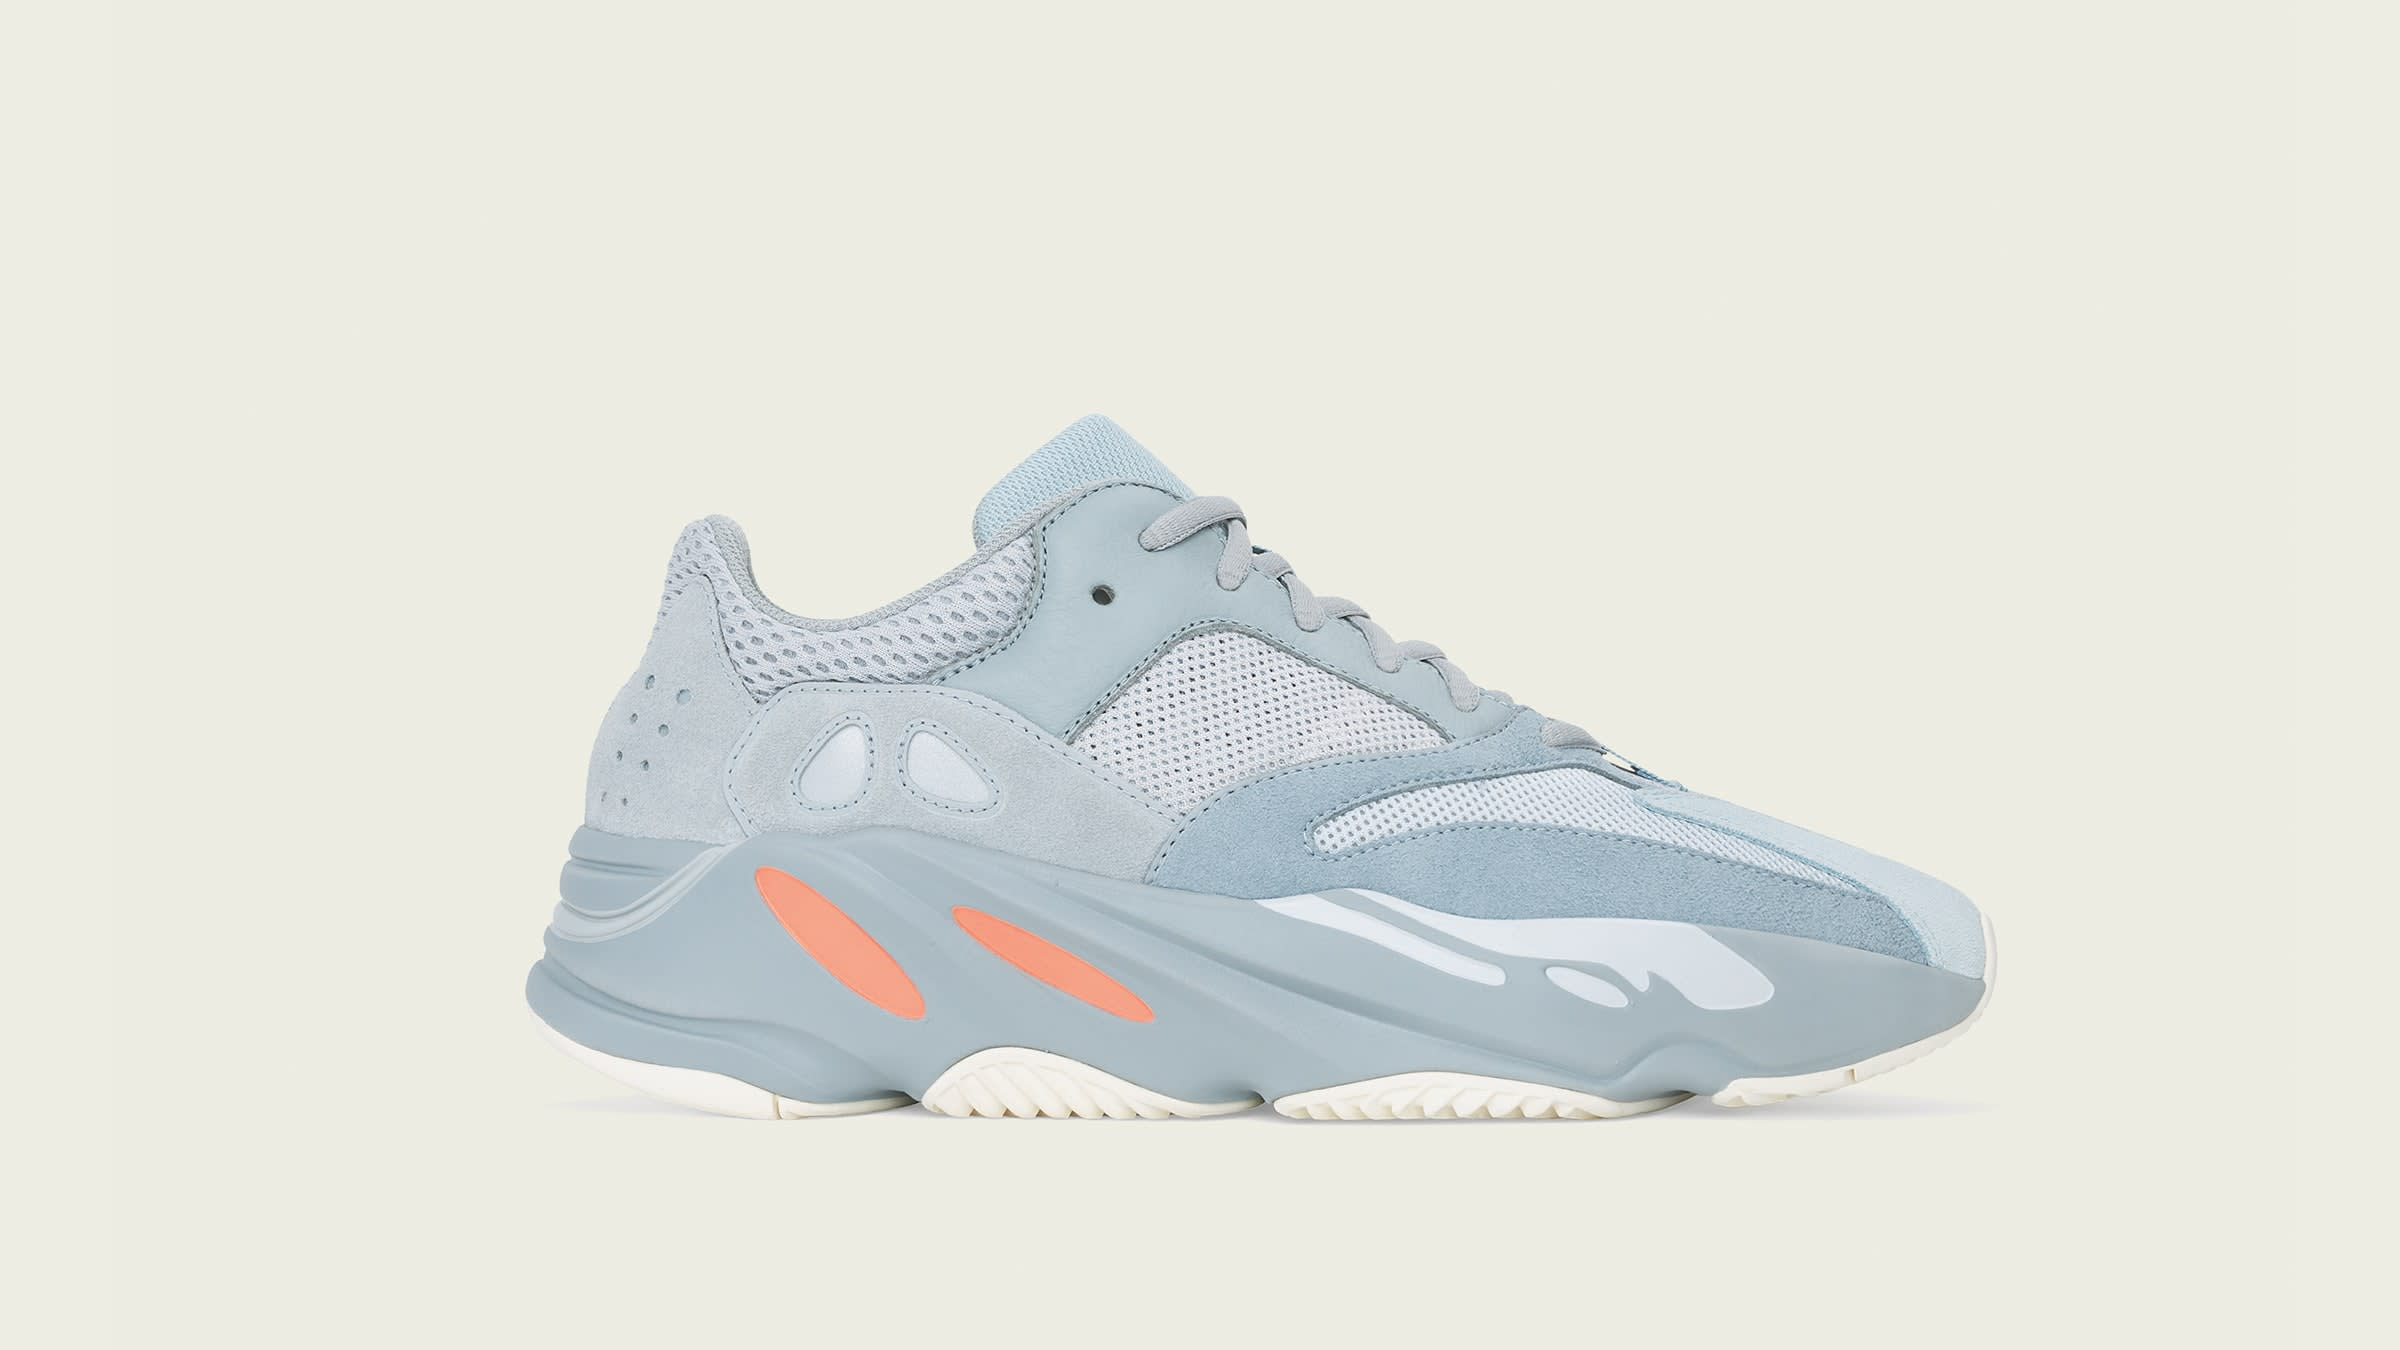 END. Features adidas + Kanye West YEEZY BOOST 700 'Inertia    END.    title=  6c513765fc94e9e7077907733e8961cc  ,  Features   adidas + Kanye West YEEZY BOOST 700 'Inertia